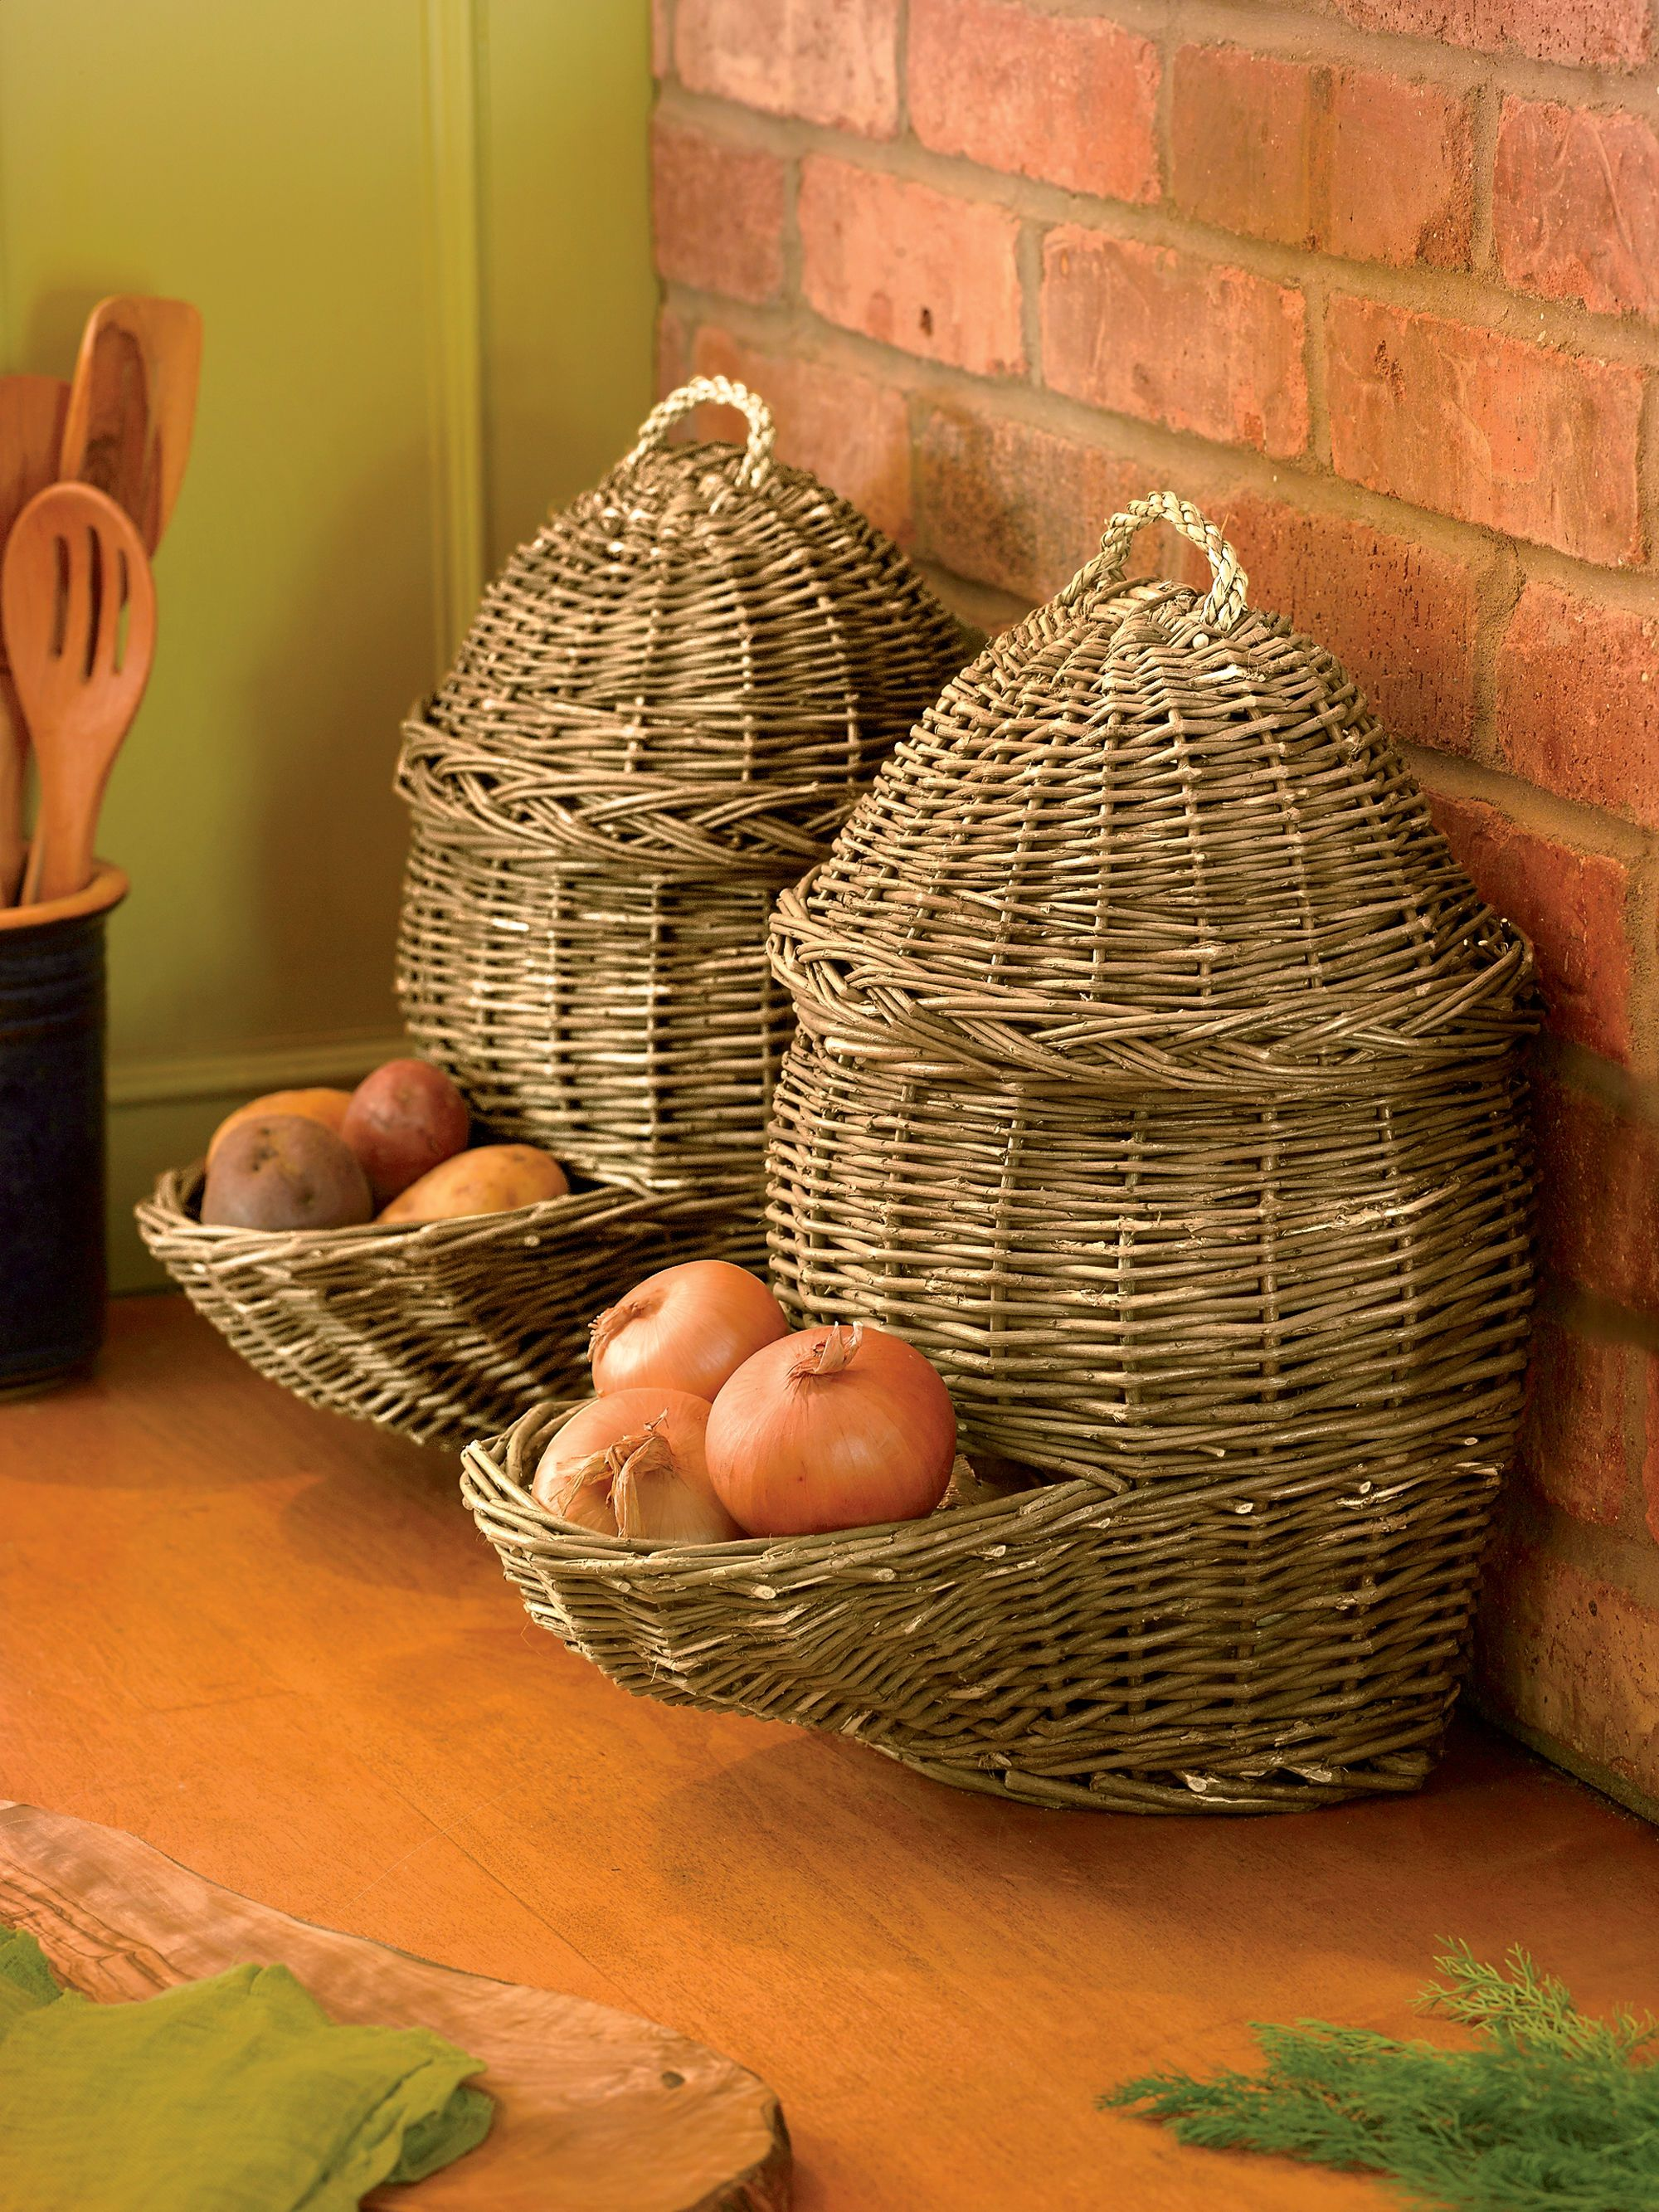 Charming Countertop Potato U0026 Onion Storage Baskets, Set Of 2 | Gardeners.com